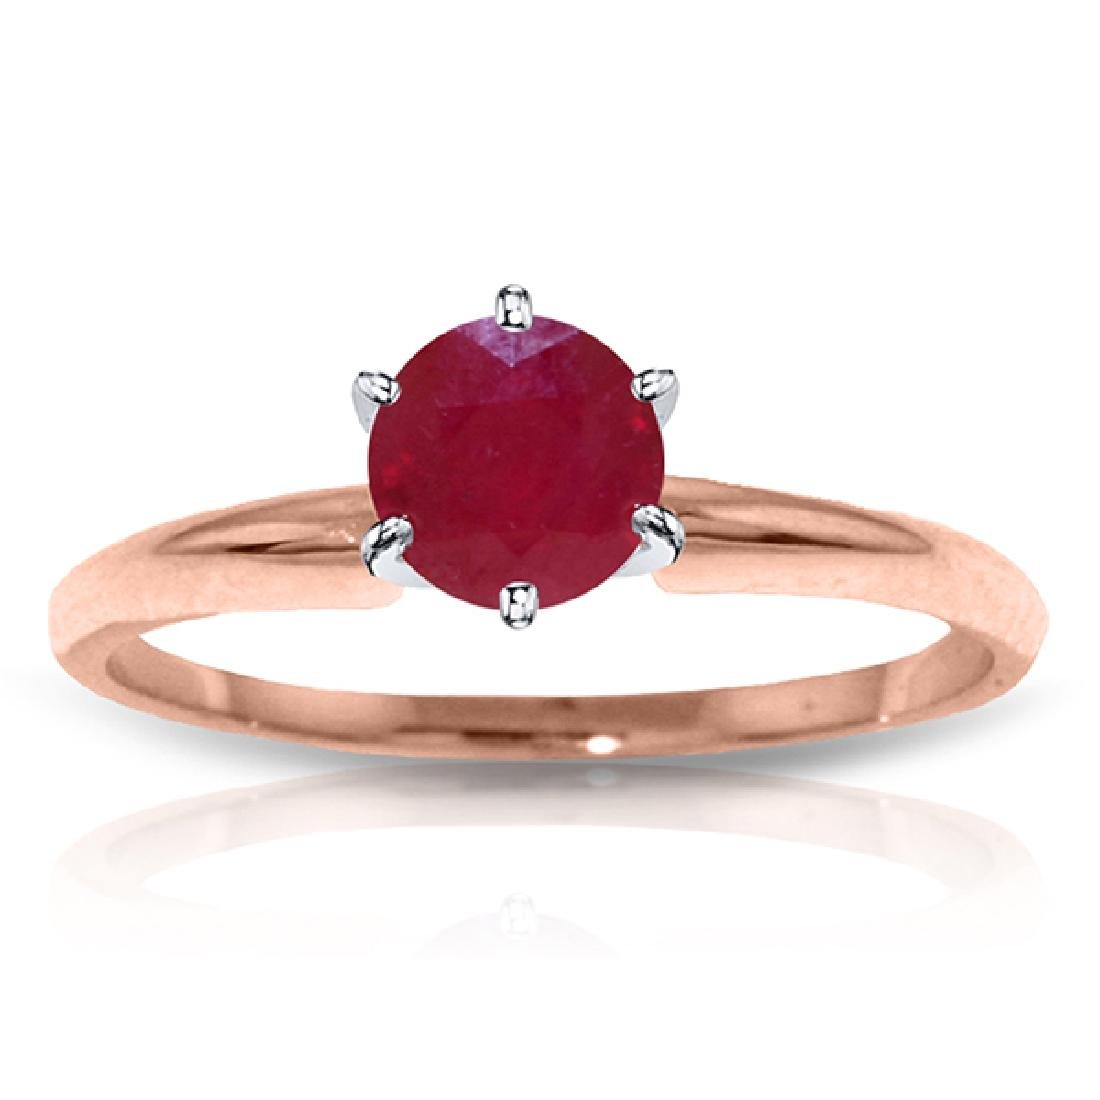 Genuine 0.65 ctw Ruby Ring Jewelry 14KT Rose Gold -